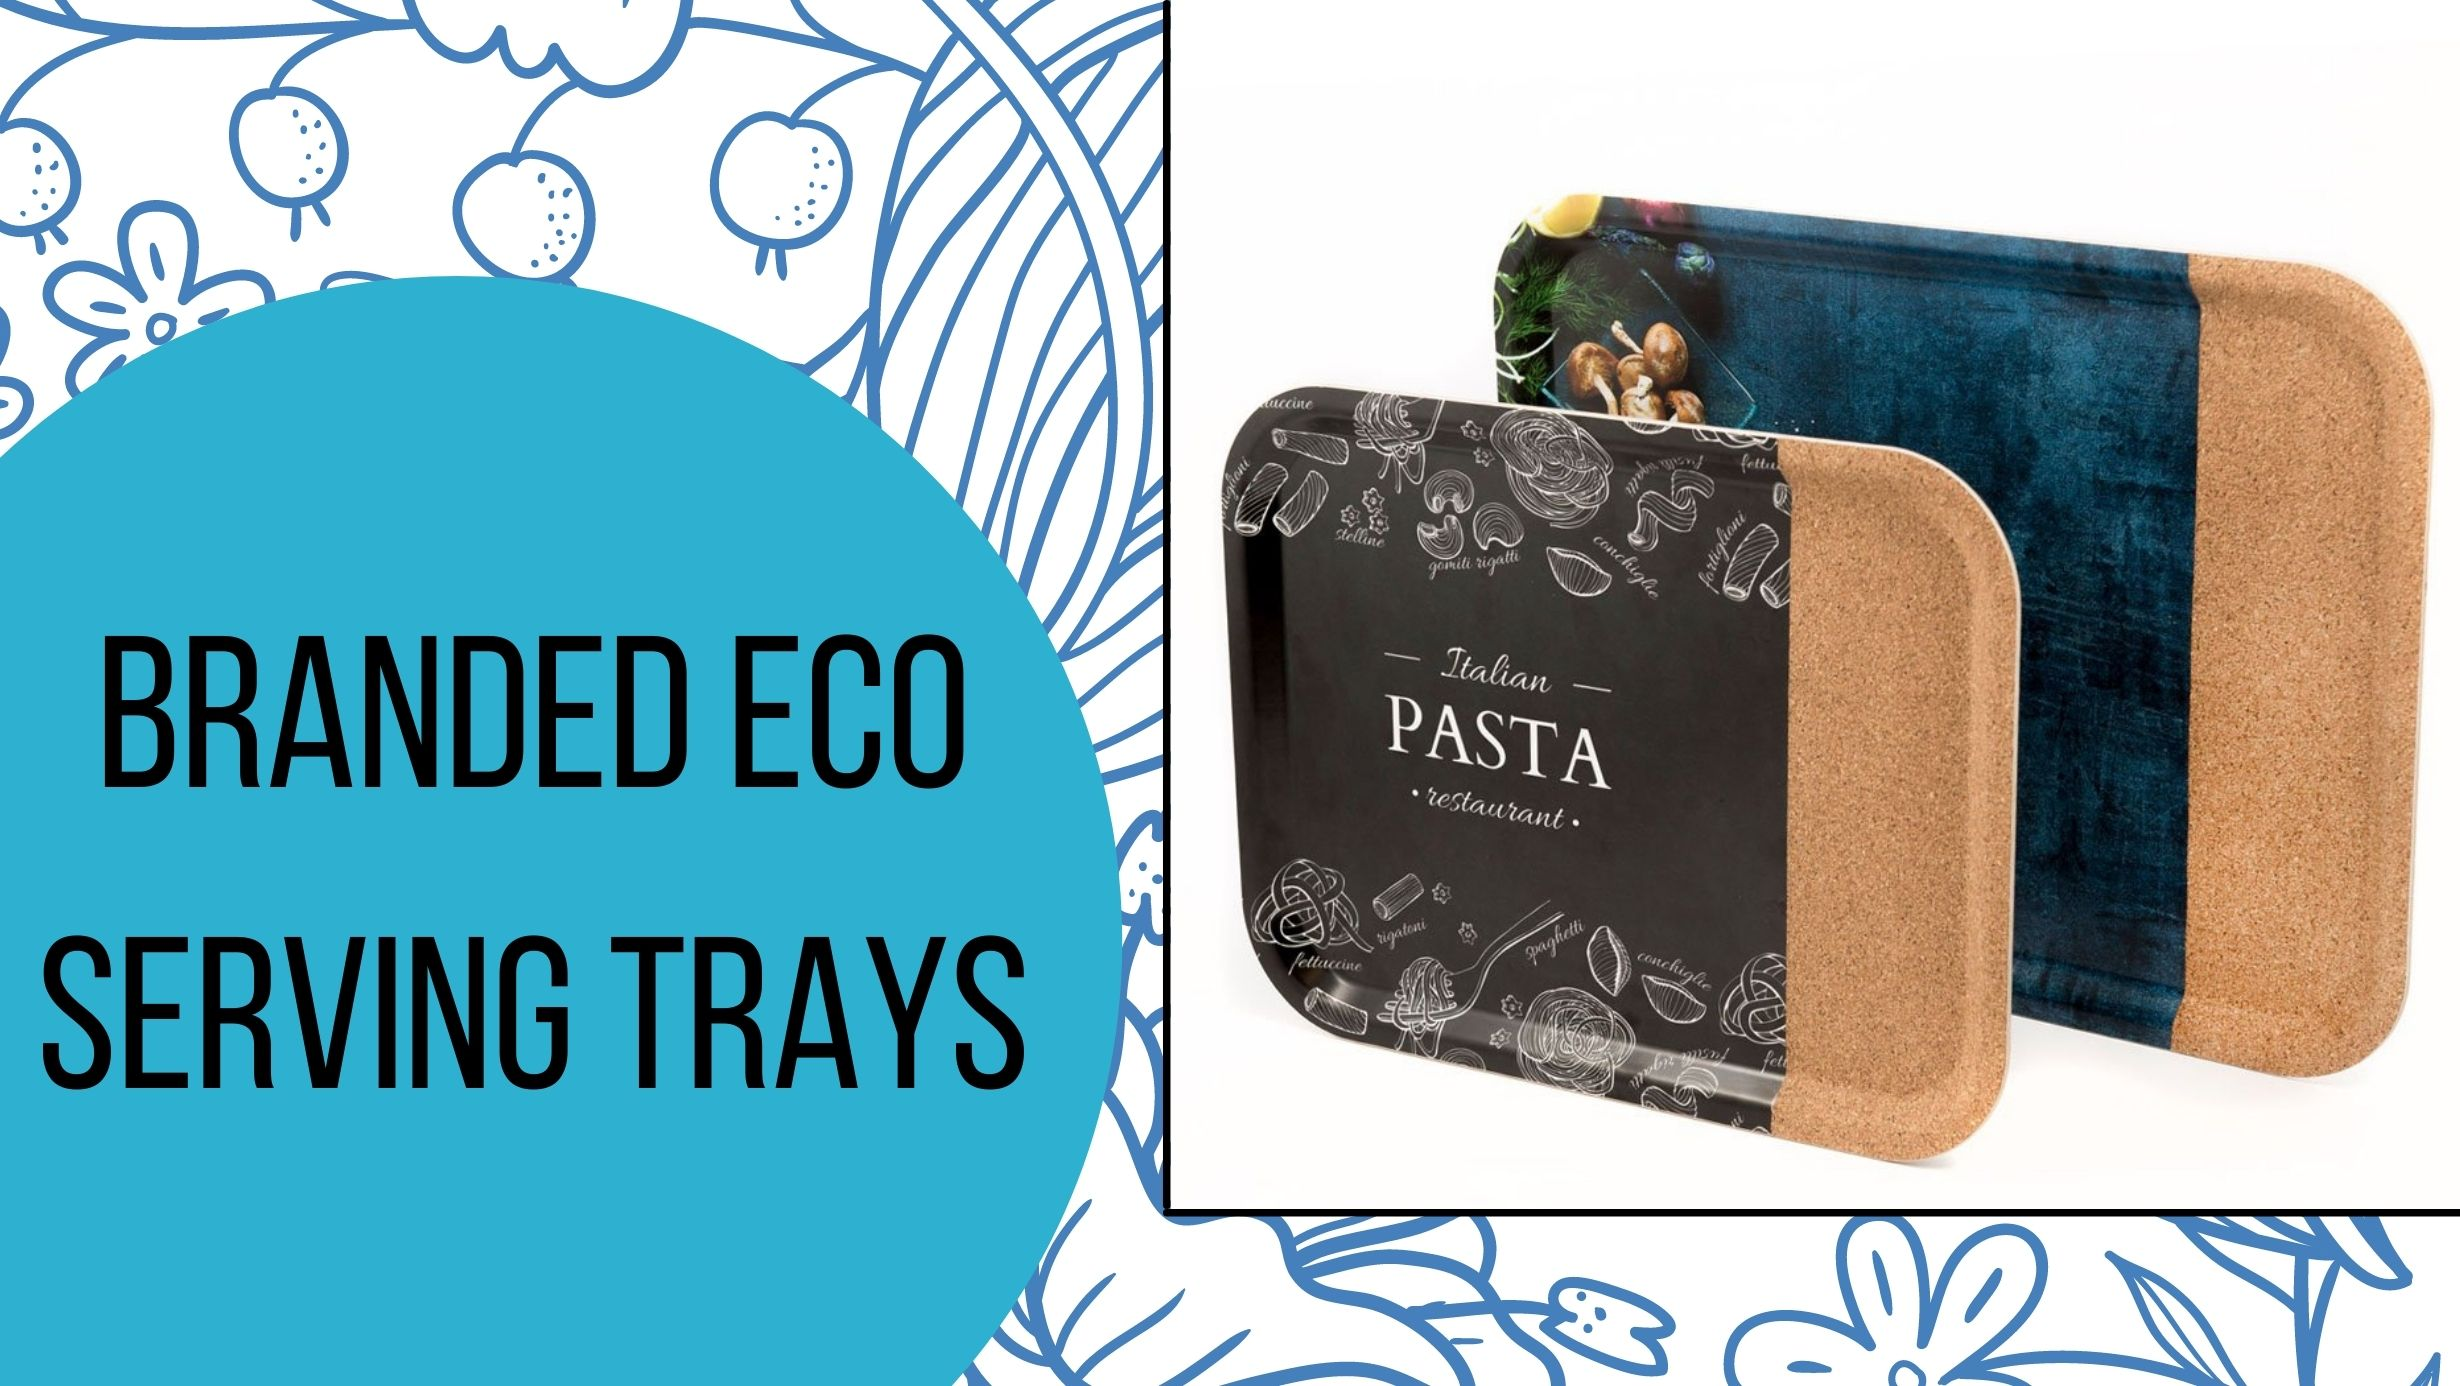 Header image for branded eco serving trays article